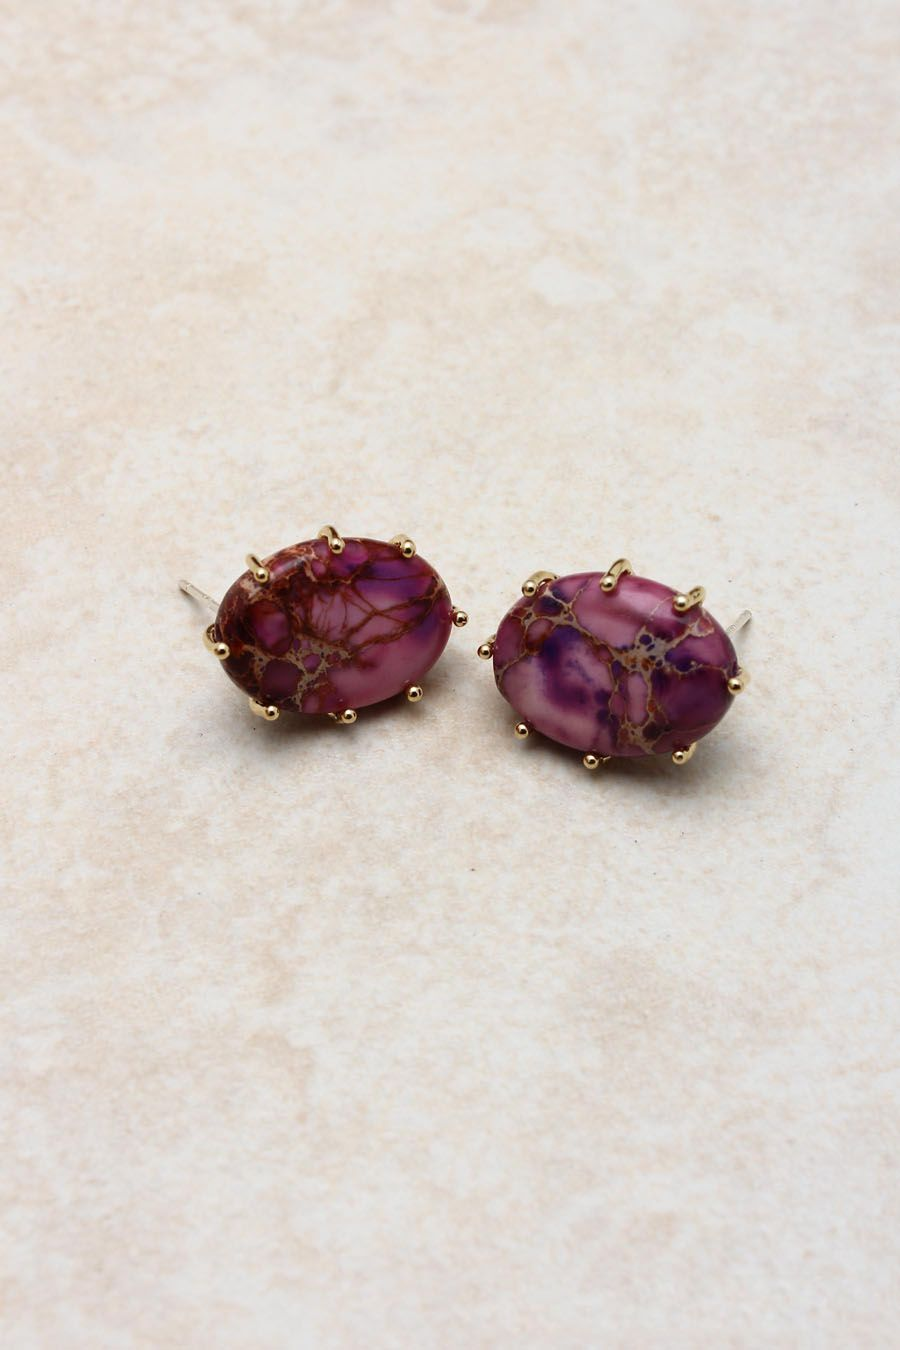 @emmastine #Raspberry #Jasper #Earrings darker than the raspberry chandliers these gorgeously unique polished jasper set in 14k gold over sterling silver as with all natural stone, variations make each piece a true one of a kind. Very timeless and never a trend. These will be a classic staple in your wardrobe